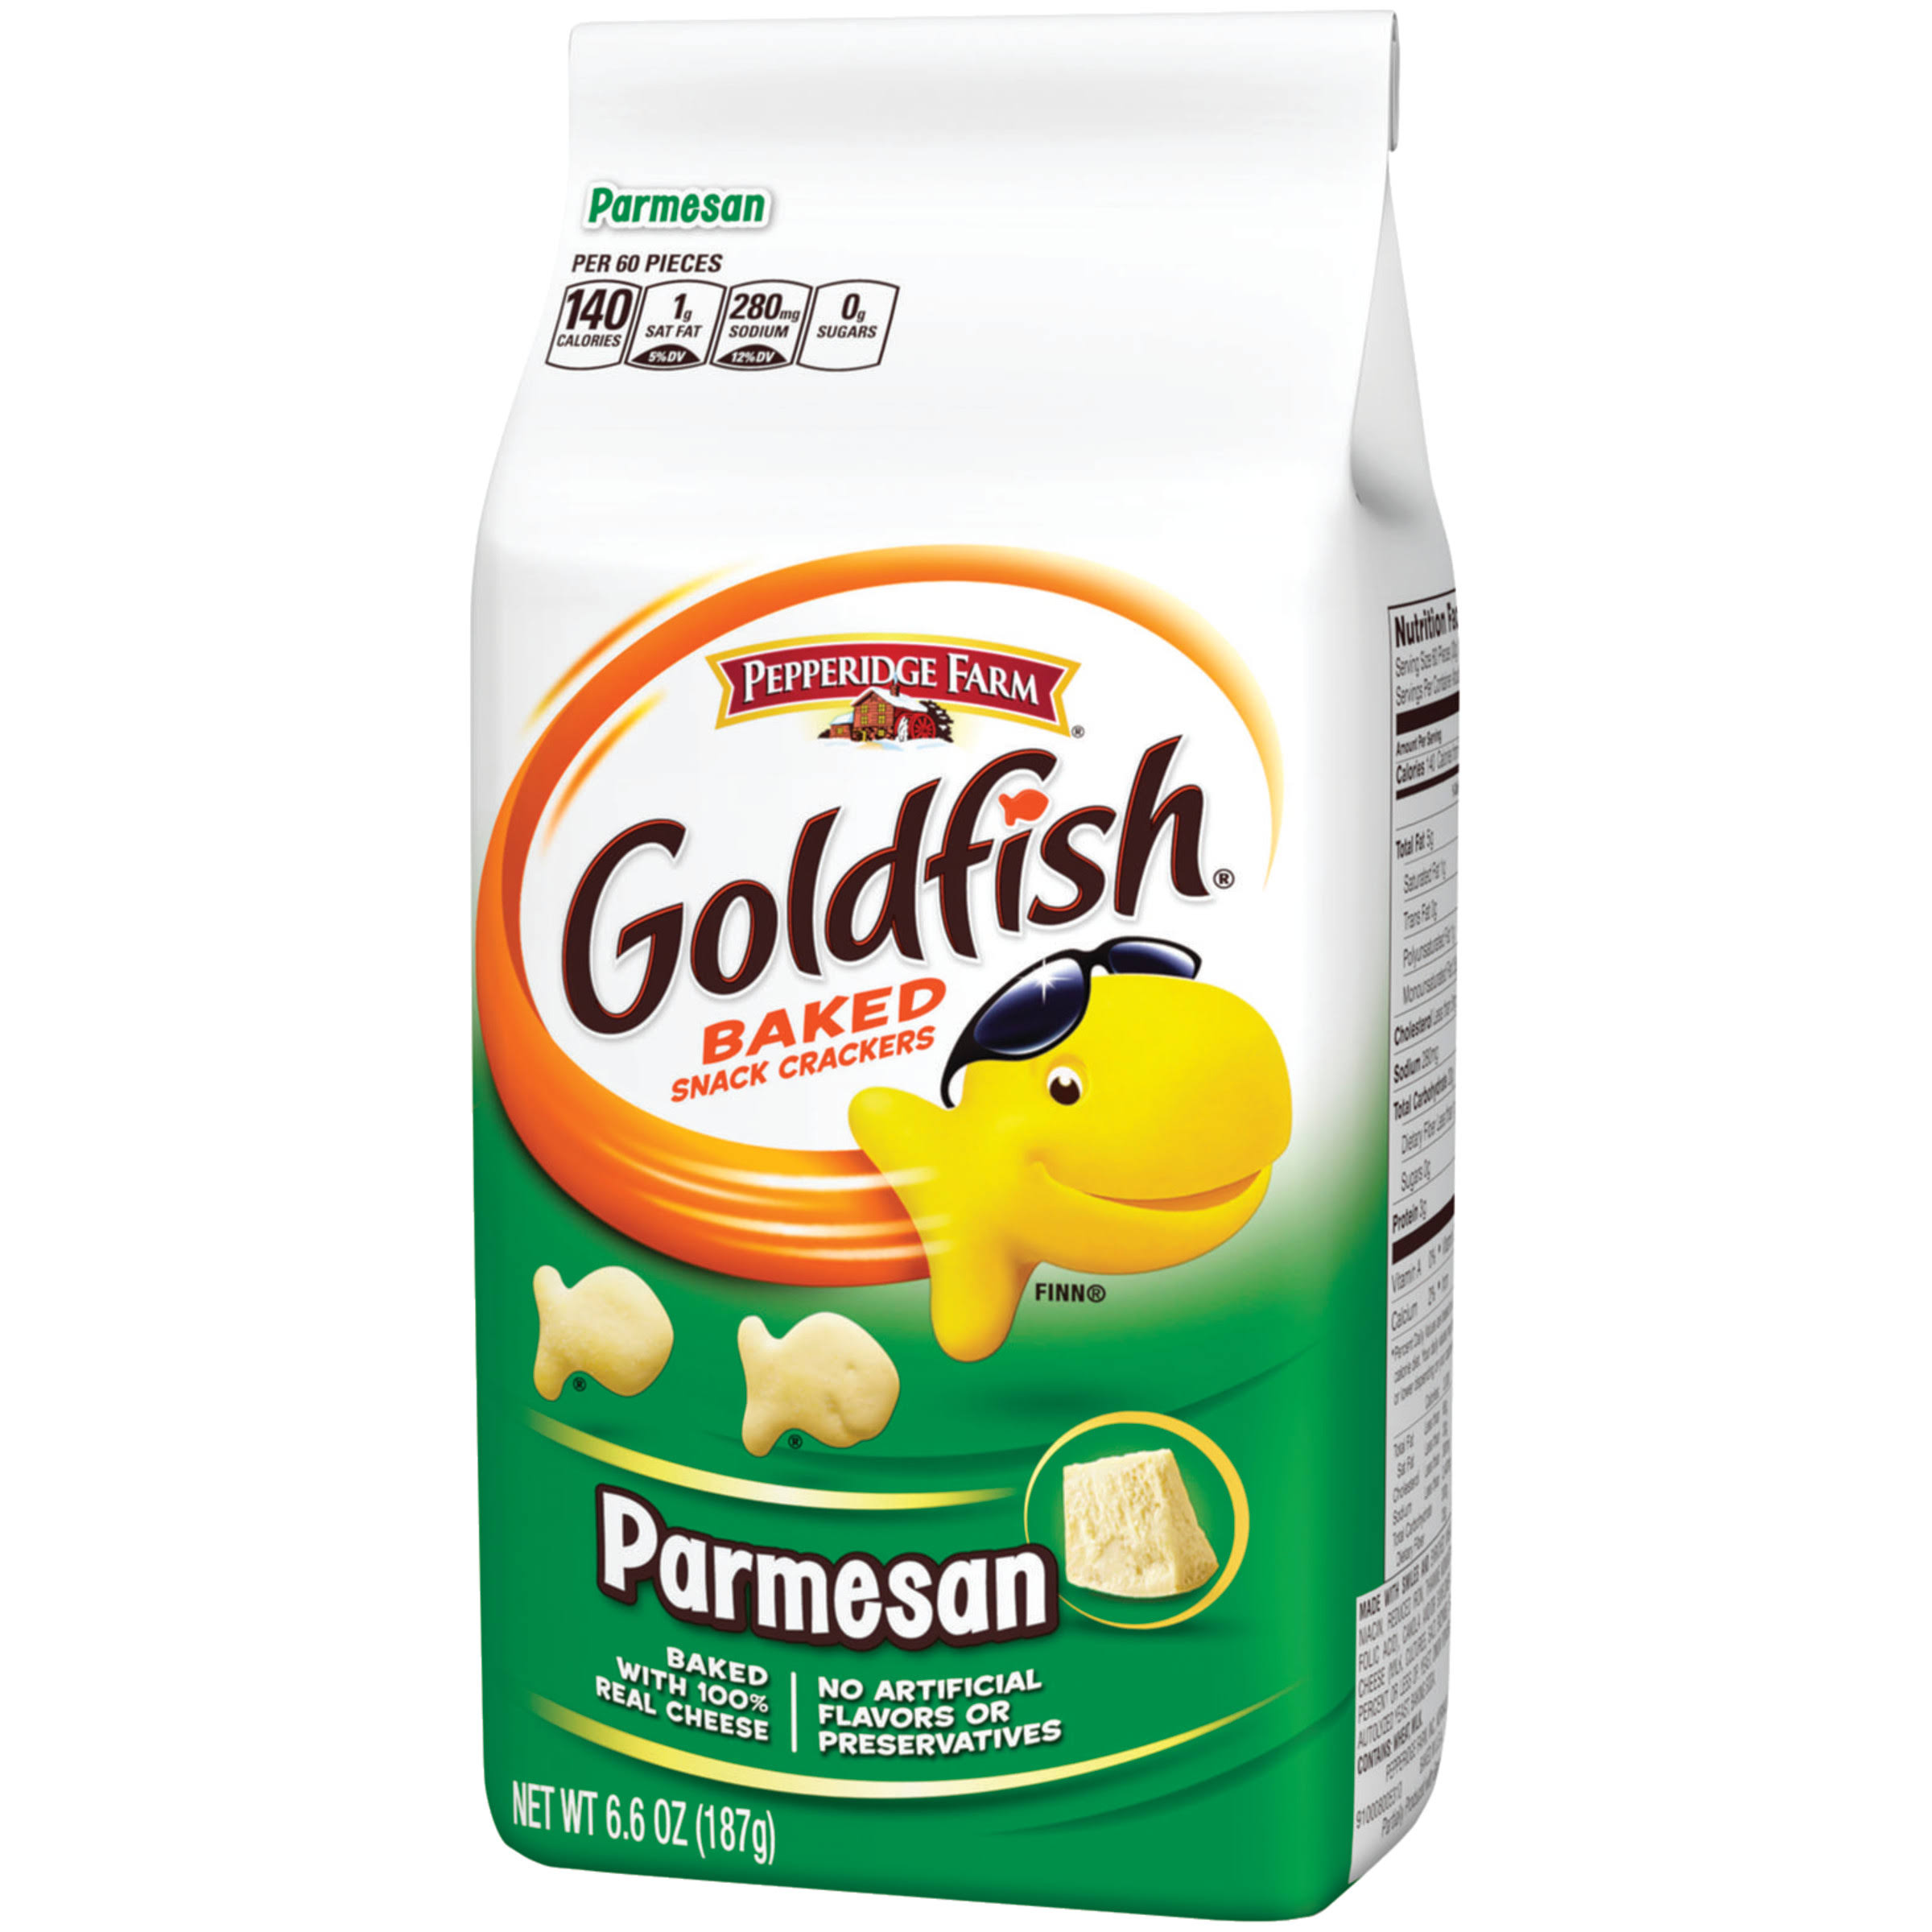 Pepperidge Farm Goldfish Baked Snack Crackers - Parmesan, 187g